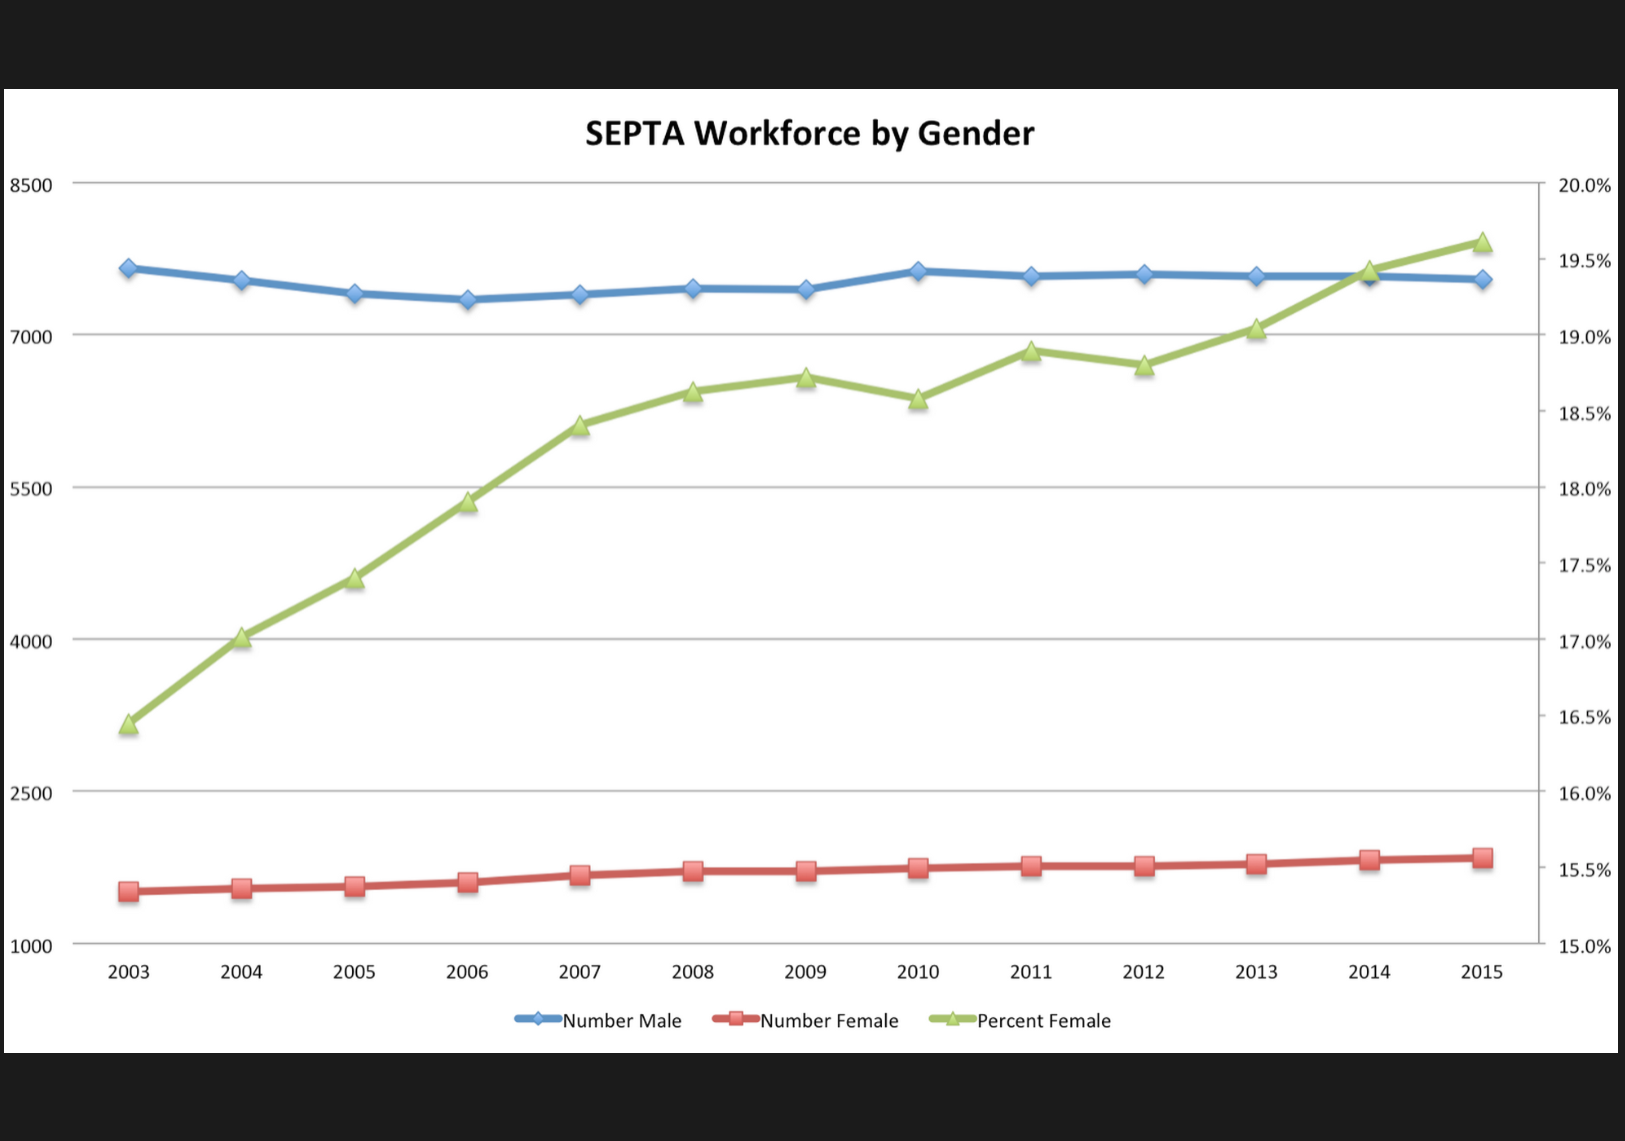 SEPTA workforce by gender